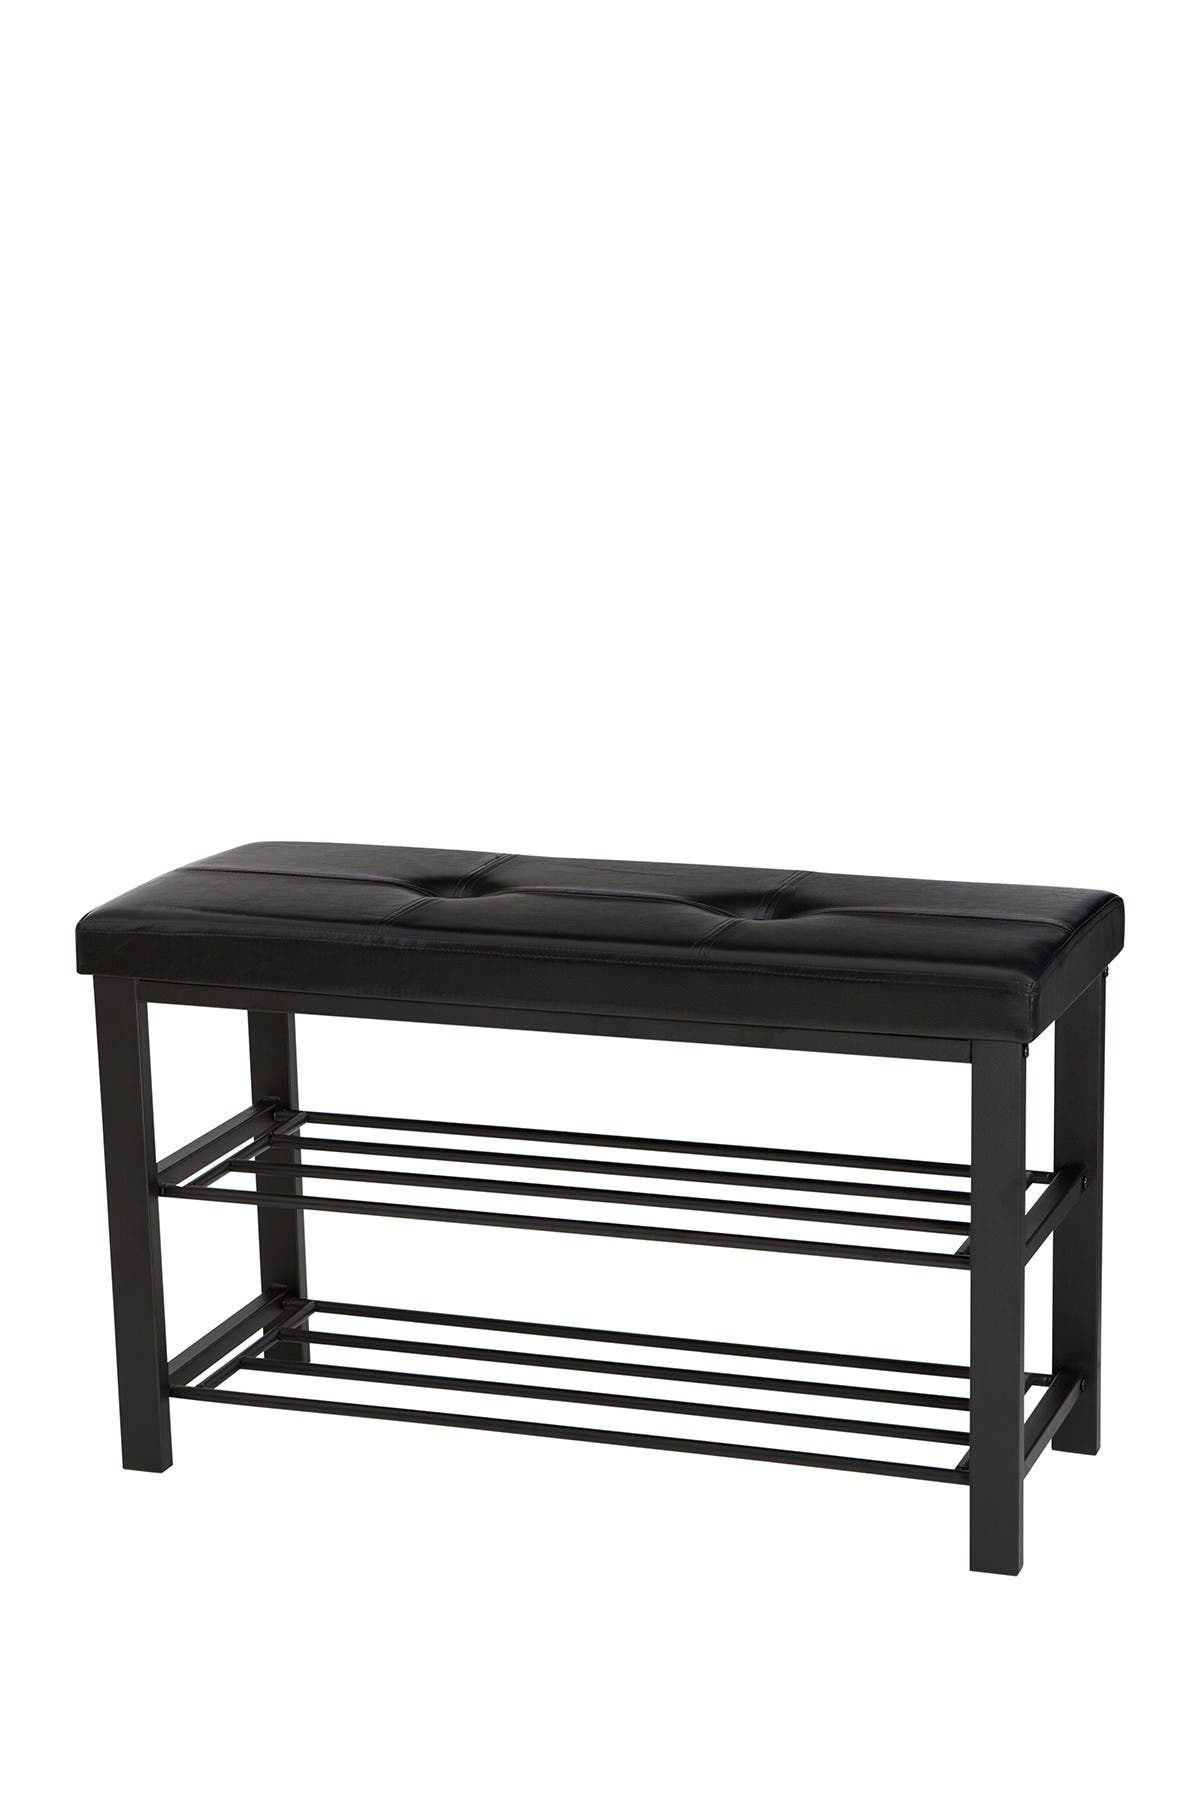 Picture of: Kennedy International Inc Black Entryway Shoe Storage Bench Nordstrom Rack